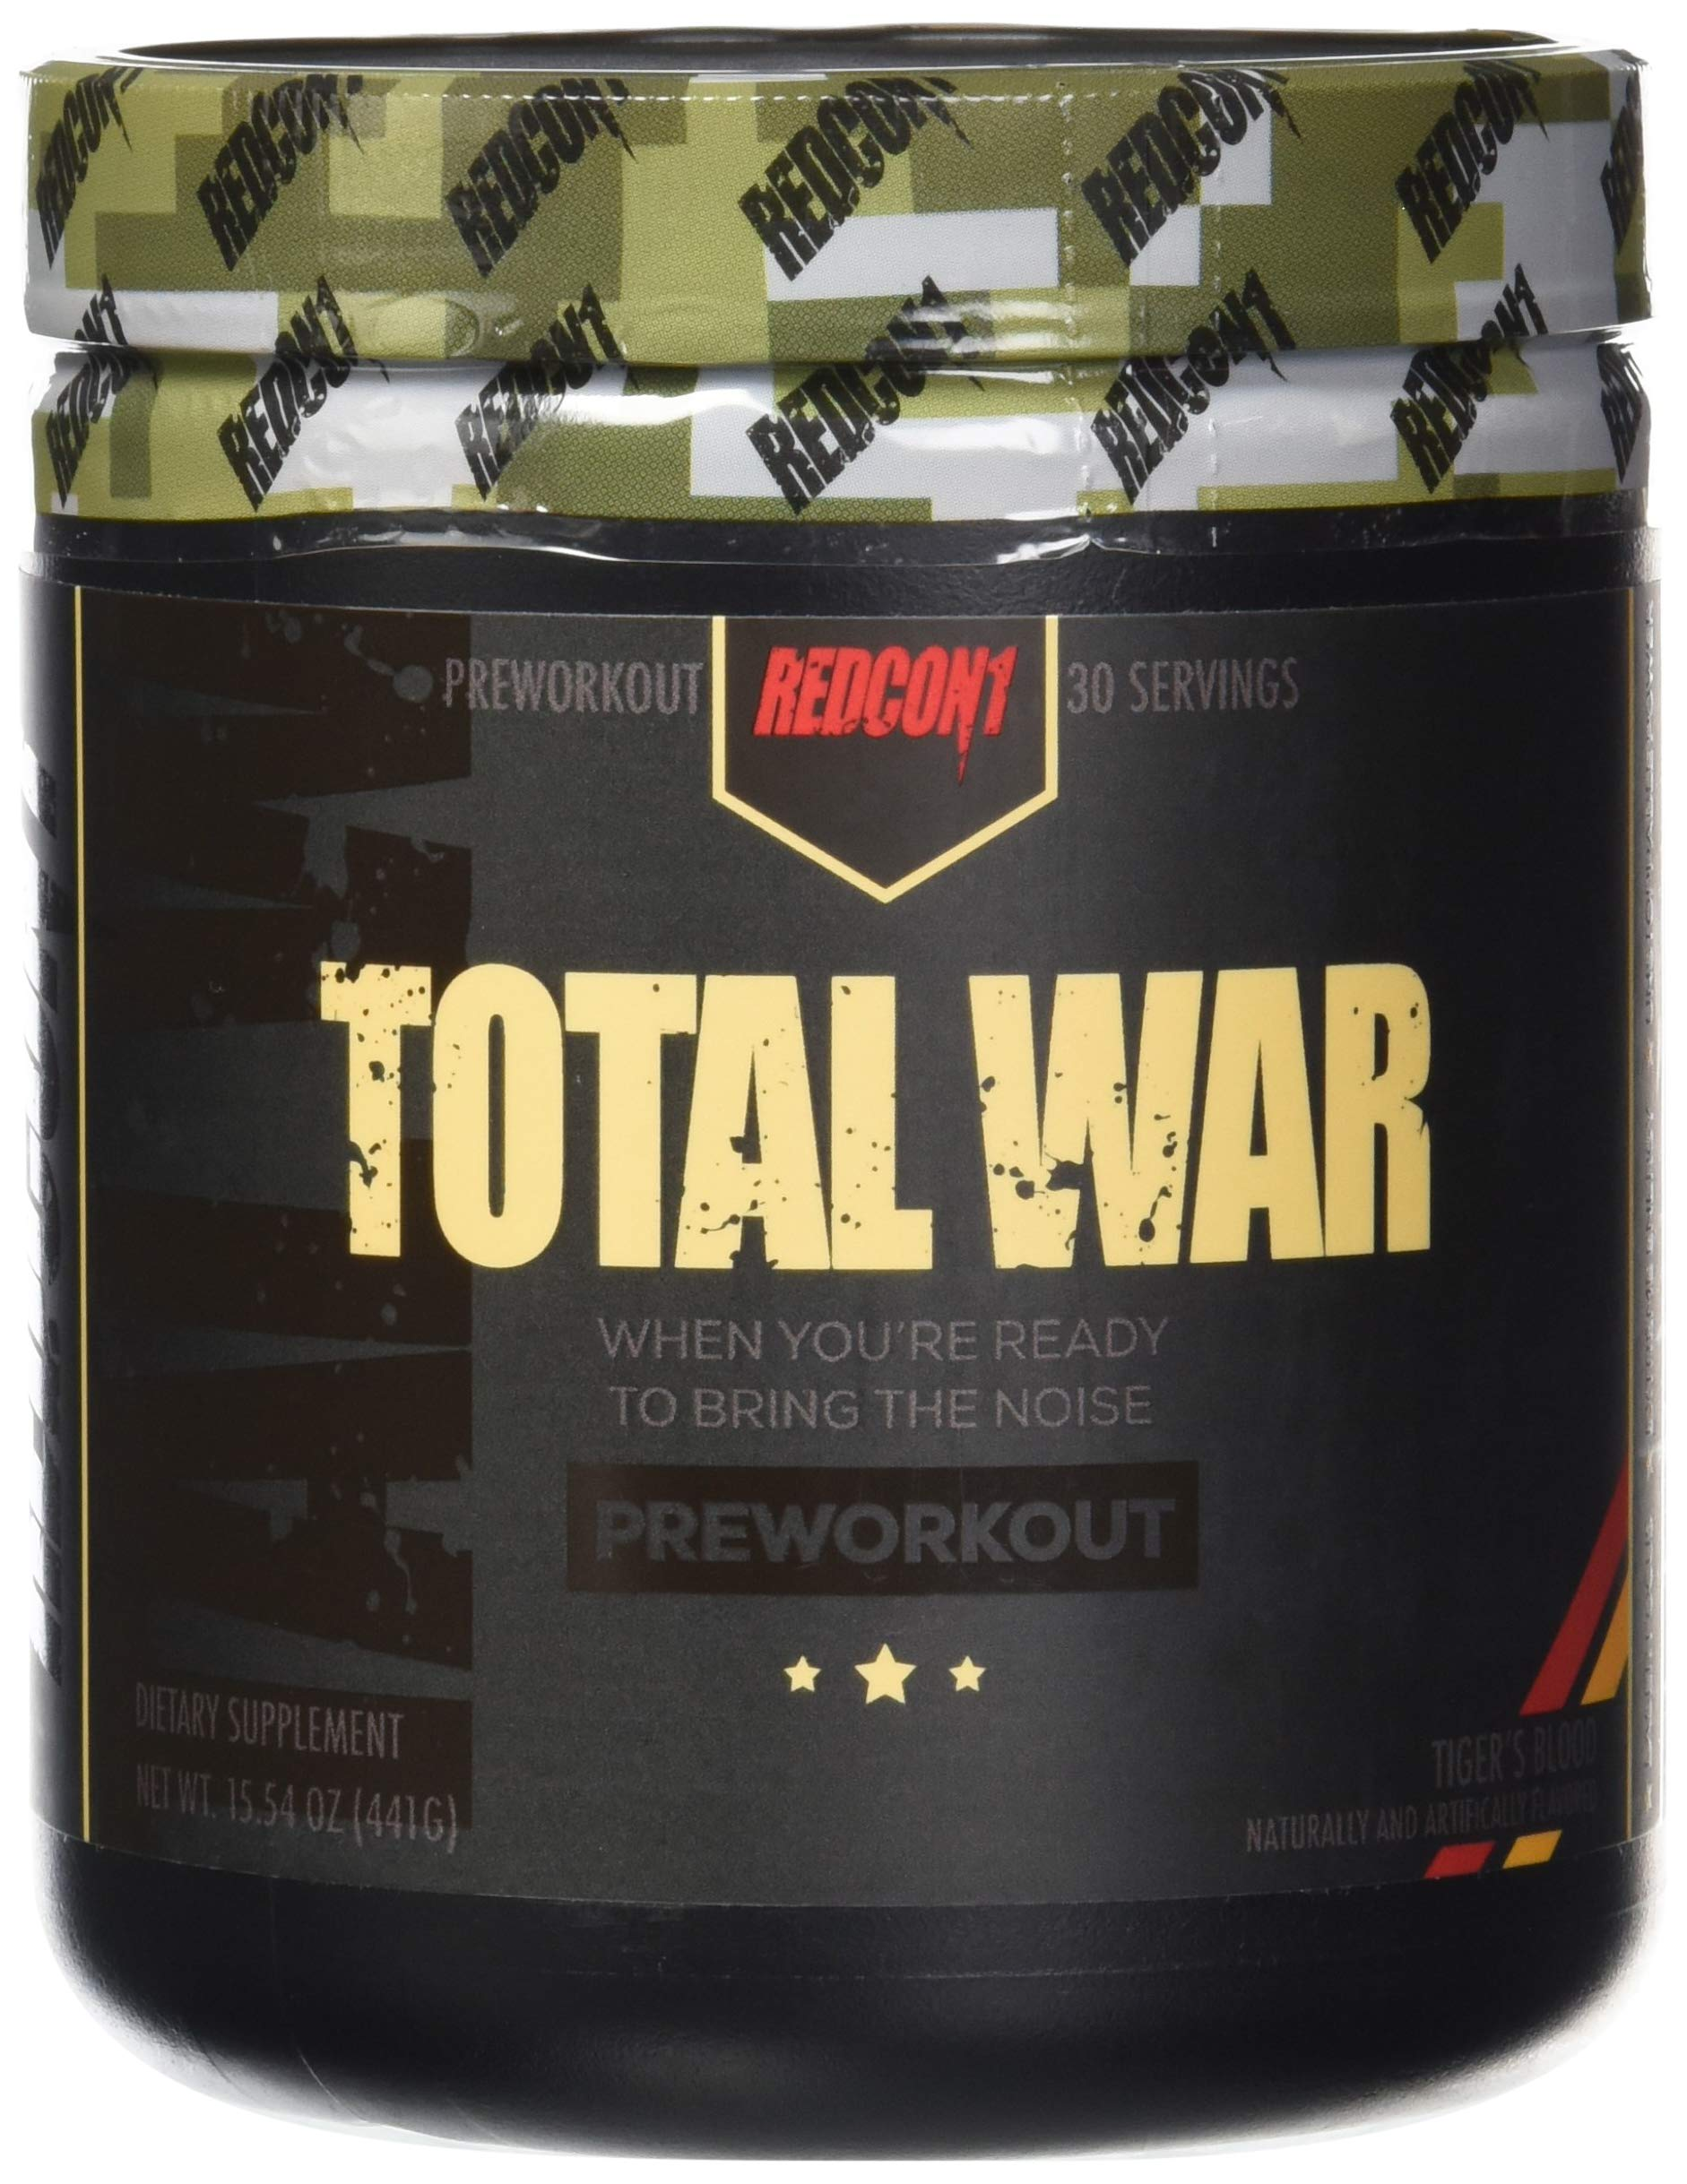 Redcon1 Total War - Pre Workout, Tigers Blood (30) Servings, Boost Energy, Increase Endurance and Focus, Beta-Alanine, Caffeine